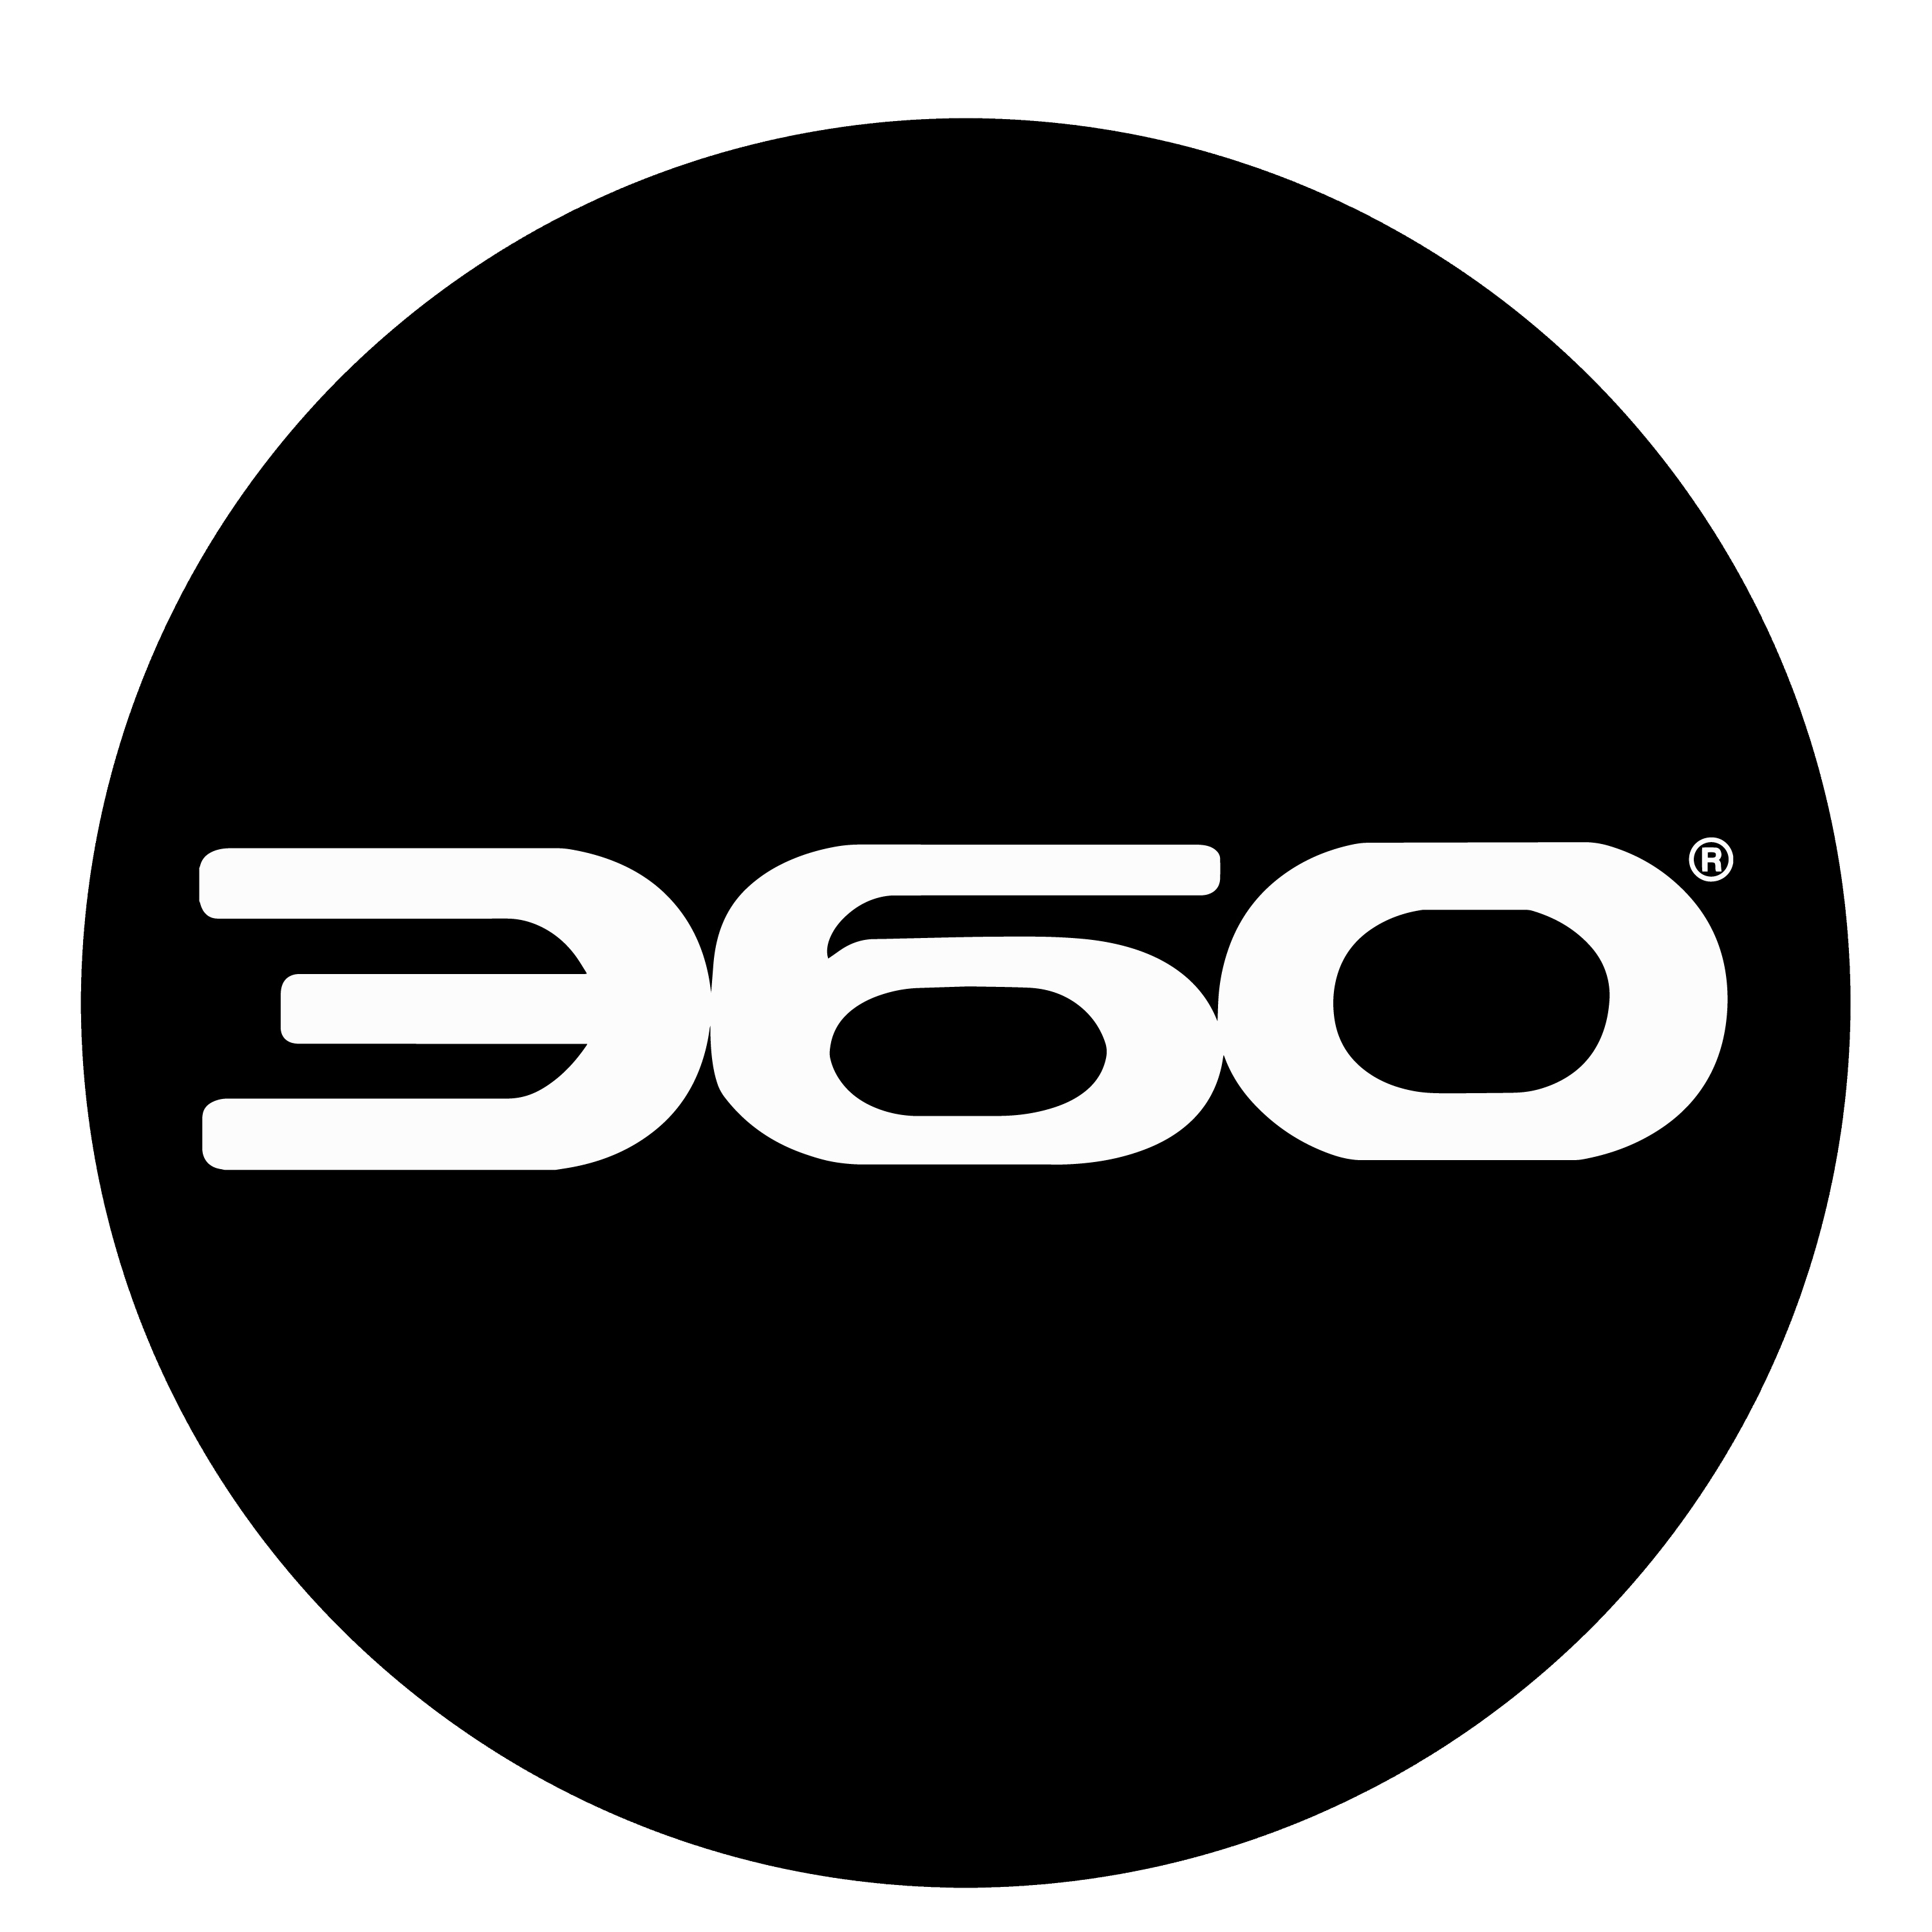 The 360 Magazine, logo